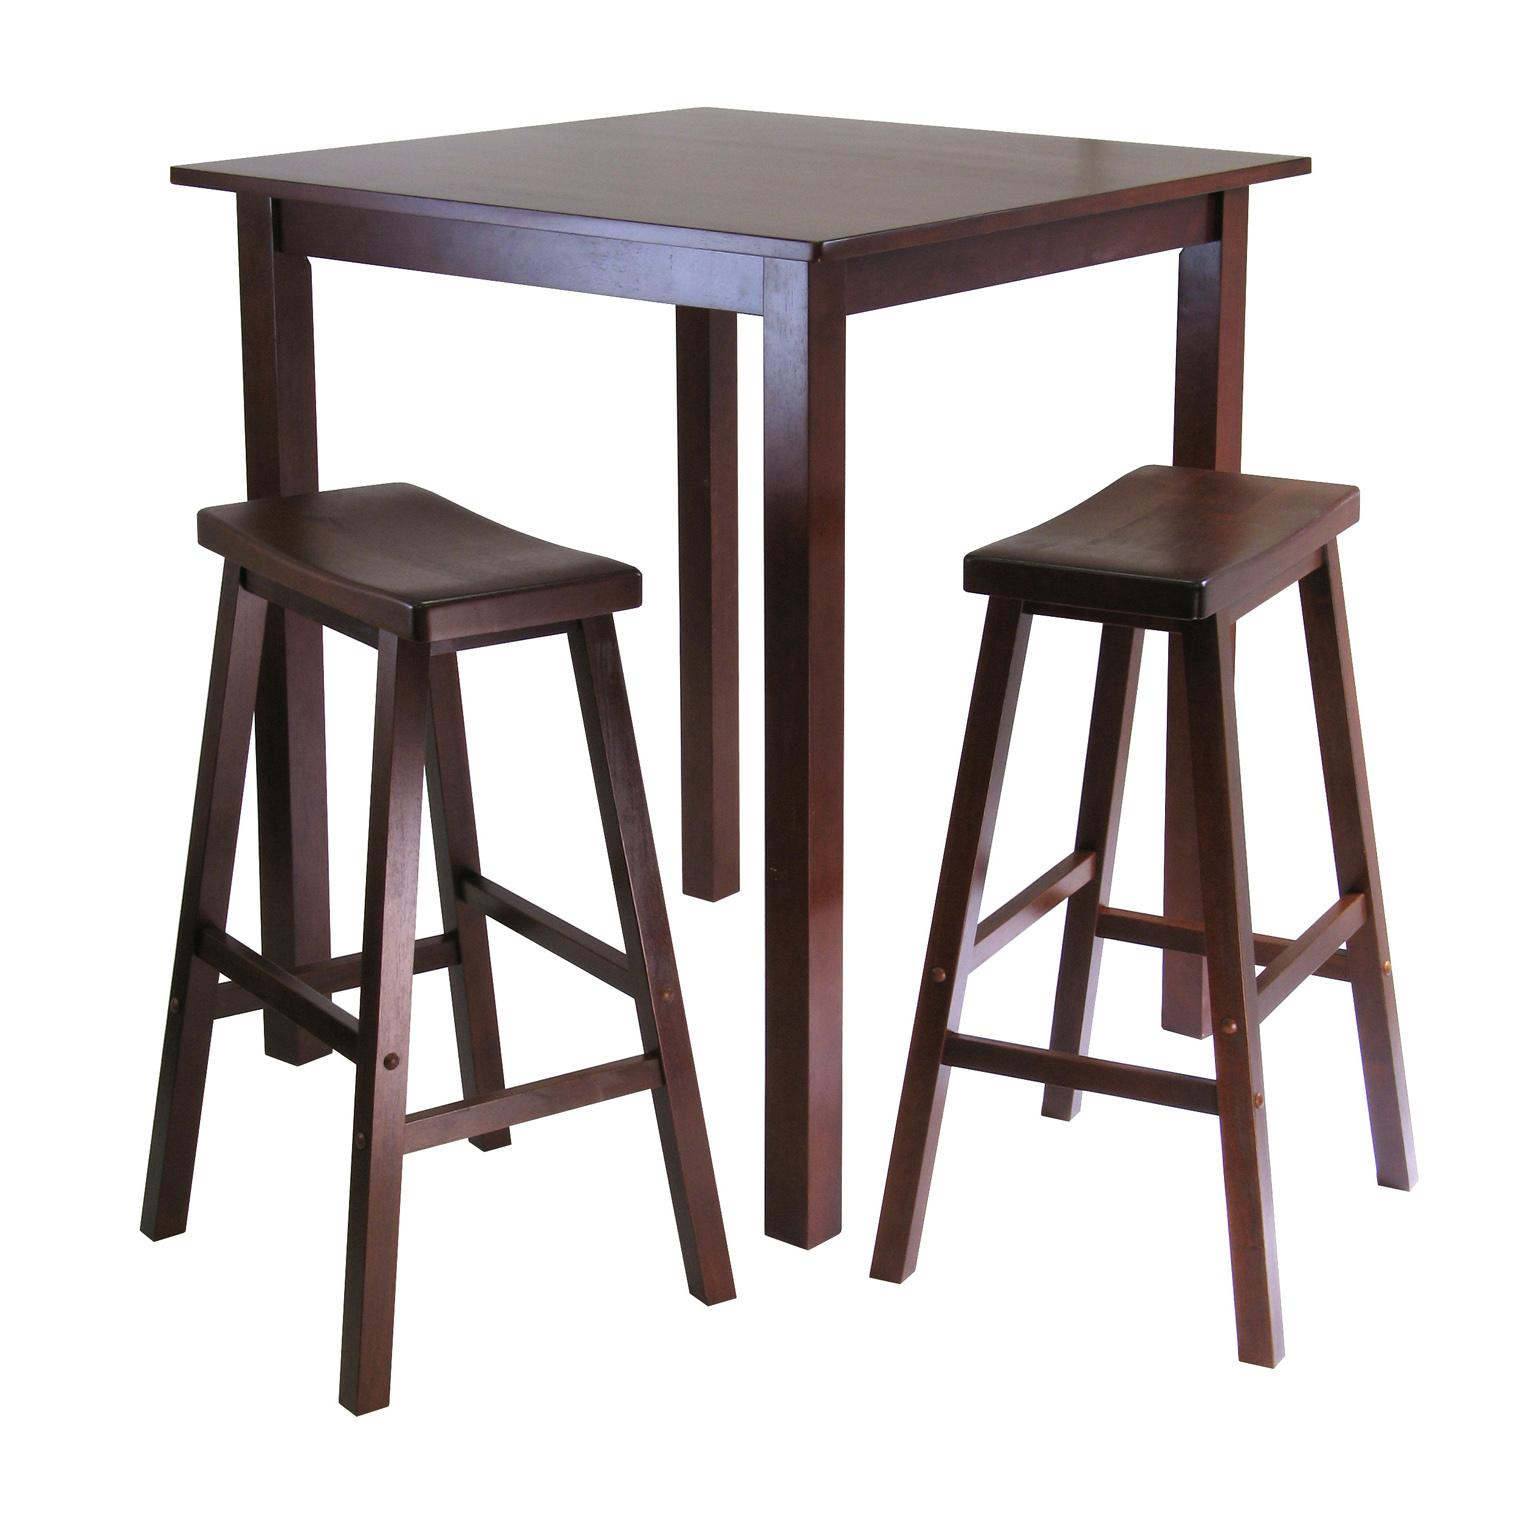 Amazon.com: Winsome\'s Parkland 3-Piece Square High/Pub Table Set in ...